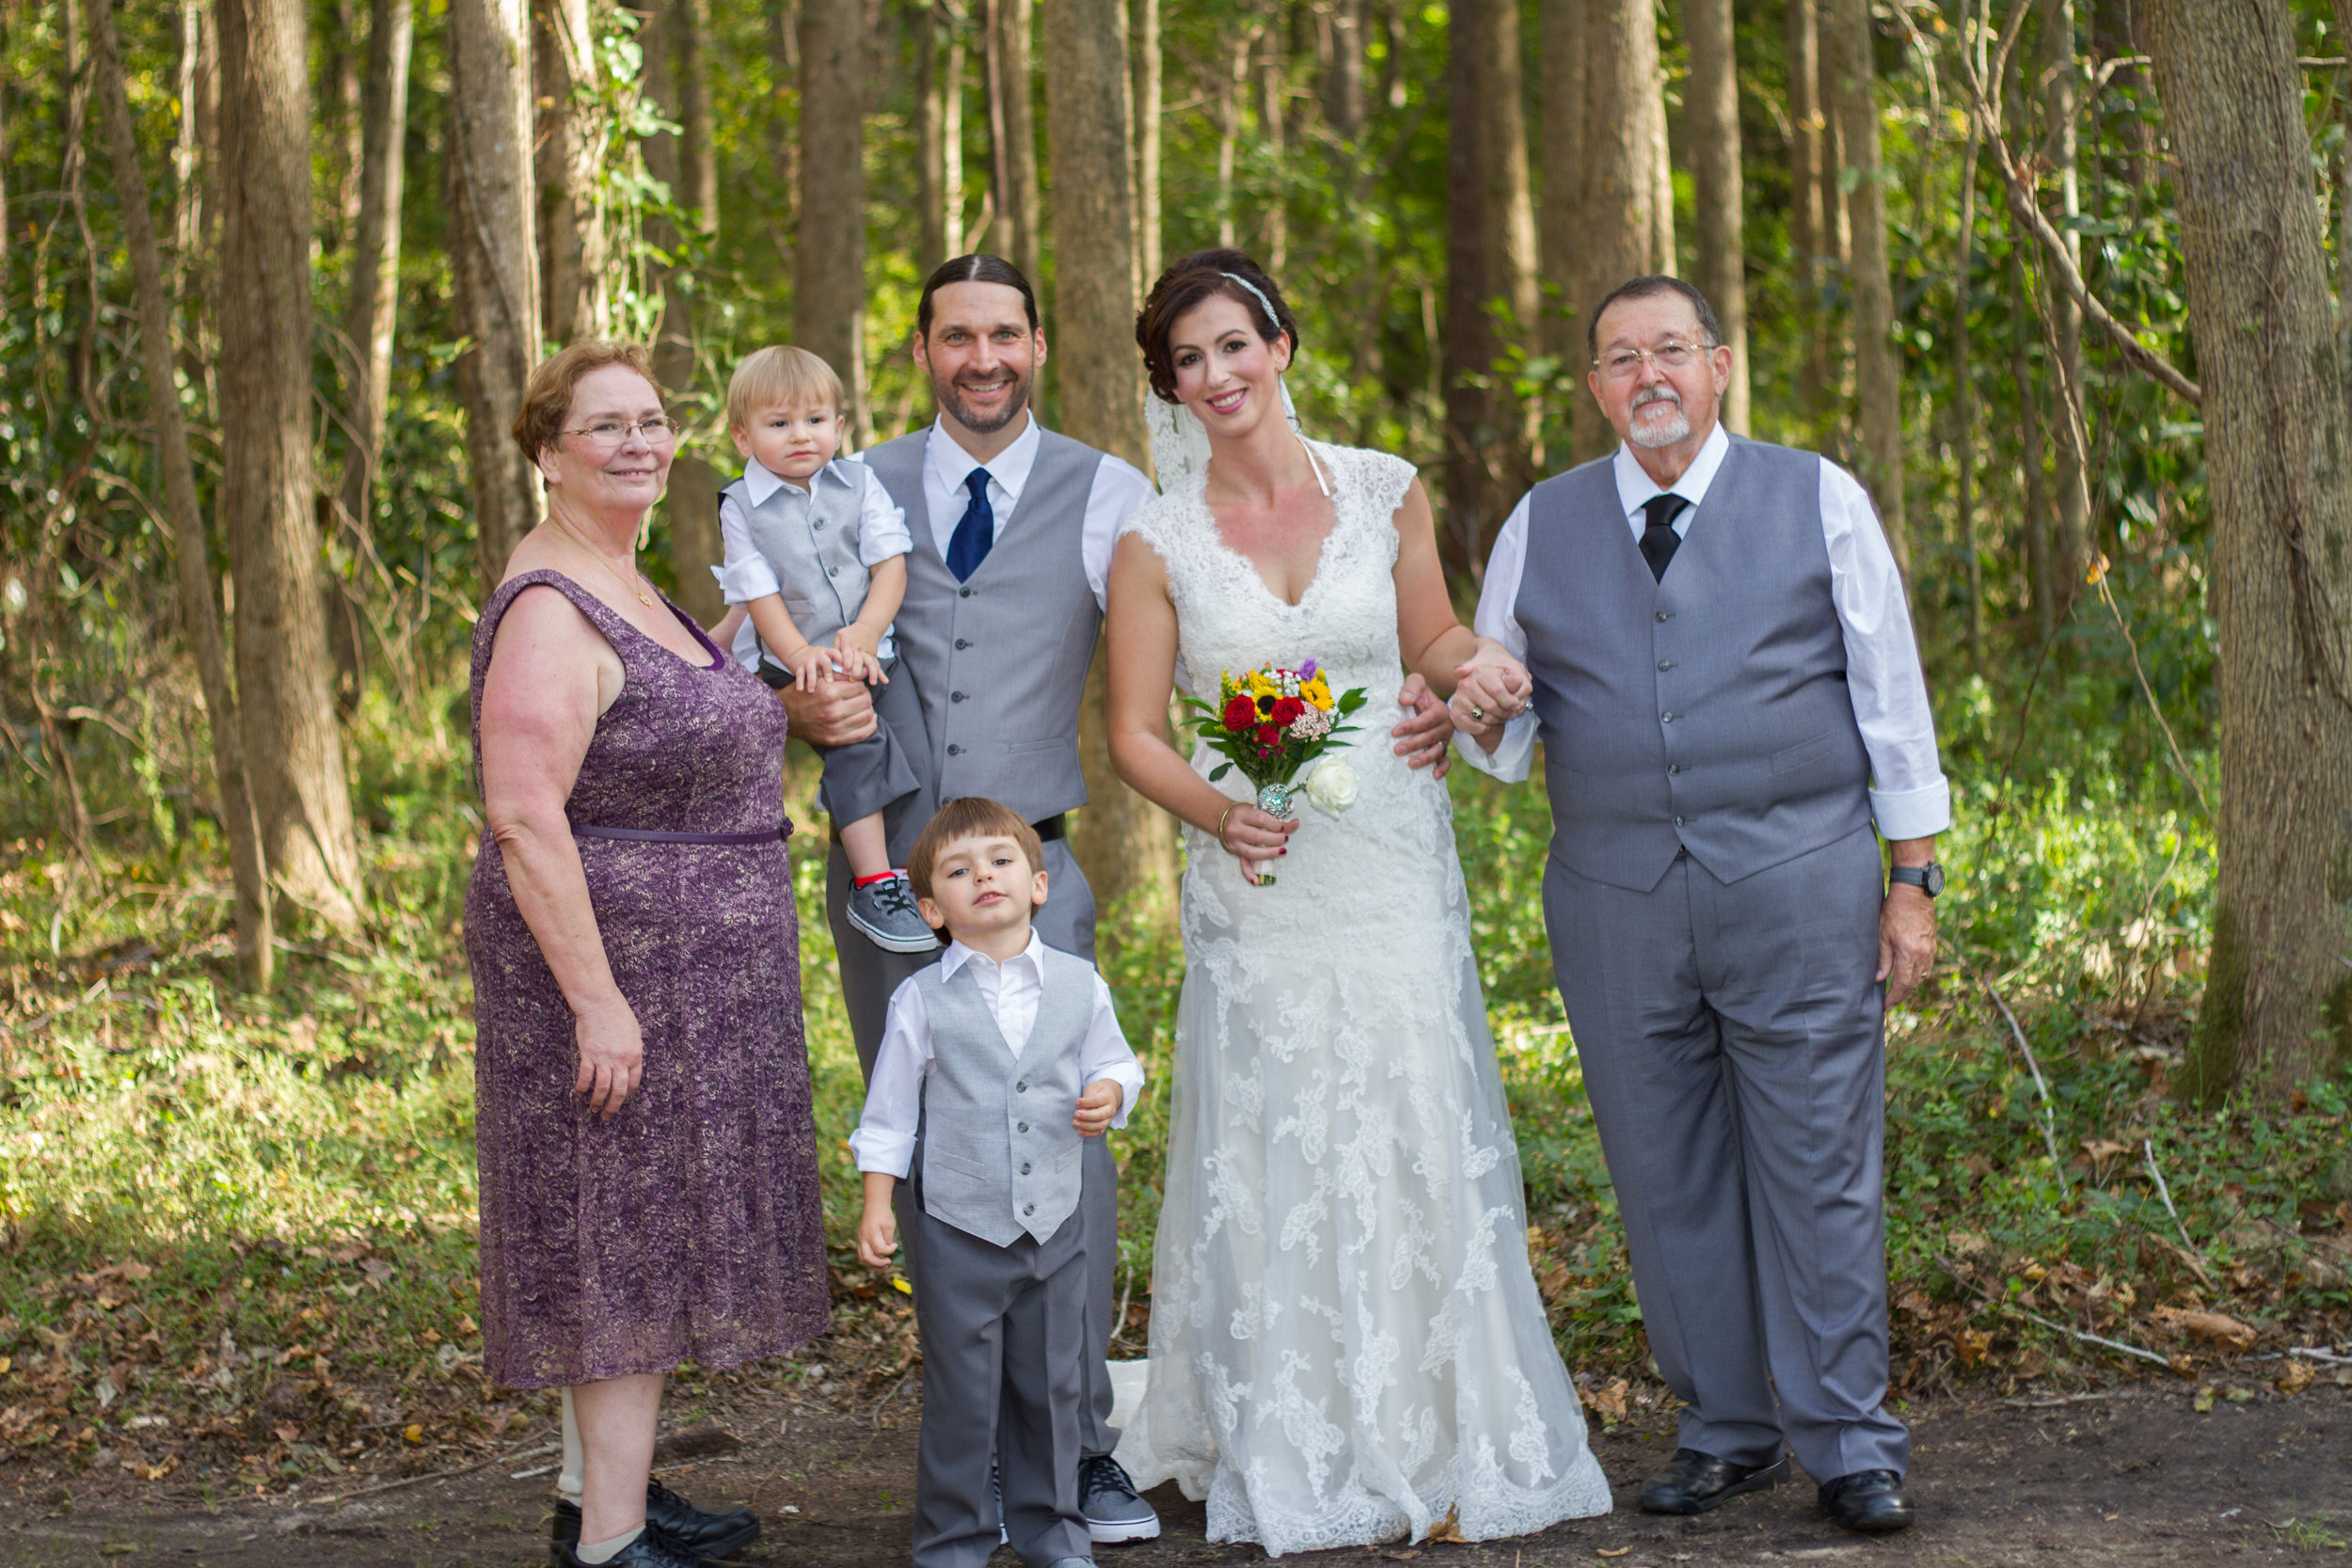 Jacqueline and Shawn Wedding (261 of 597).jpg